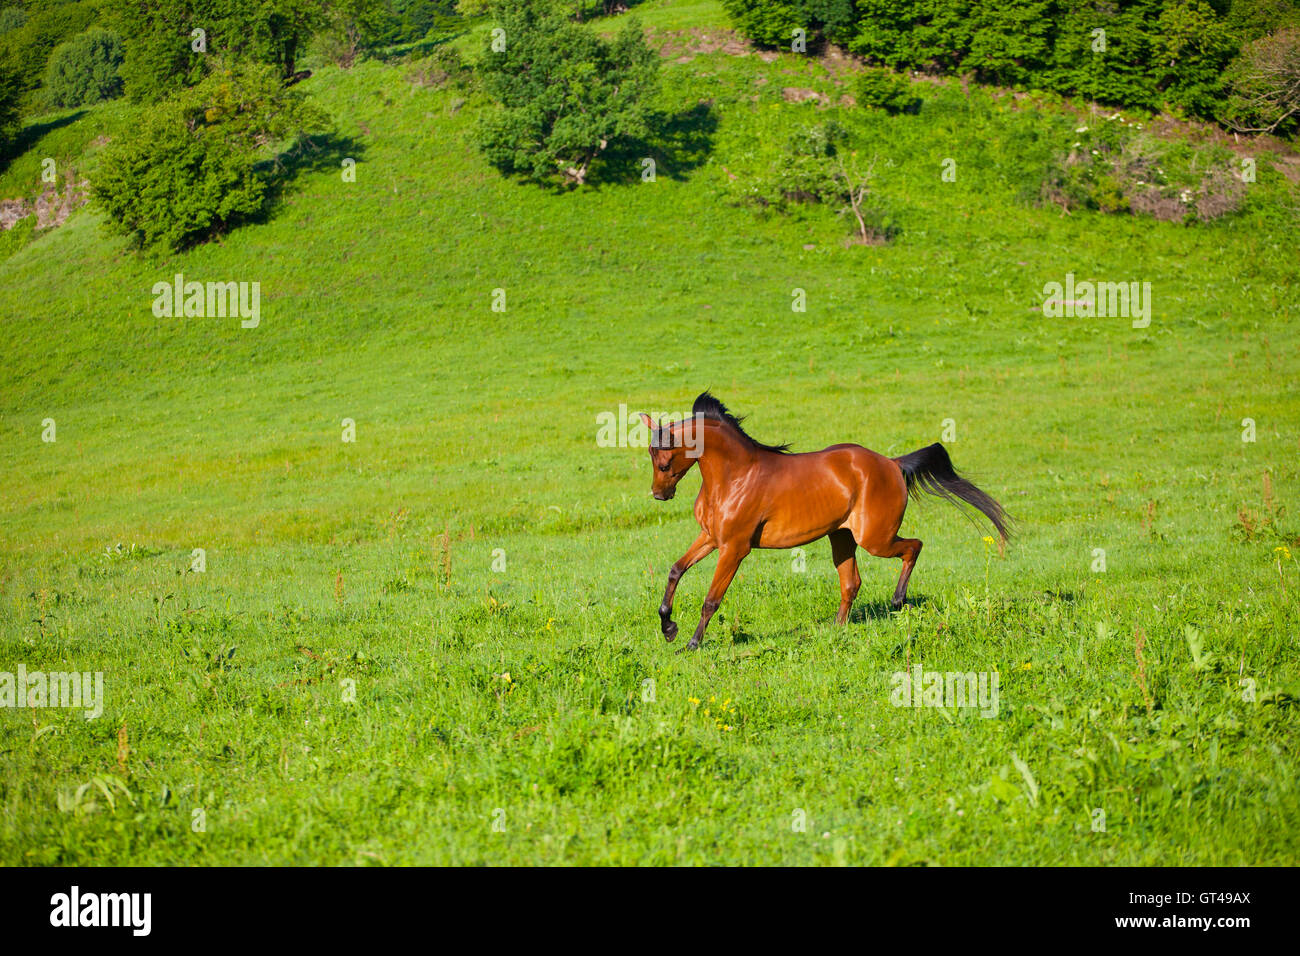 Chestnut Thoroughbred Horse Galloping On Stock Photos